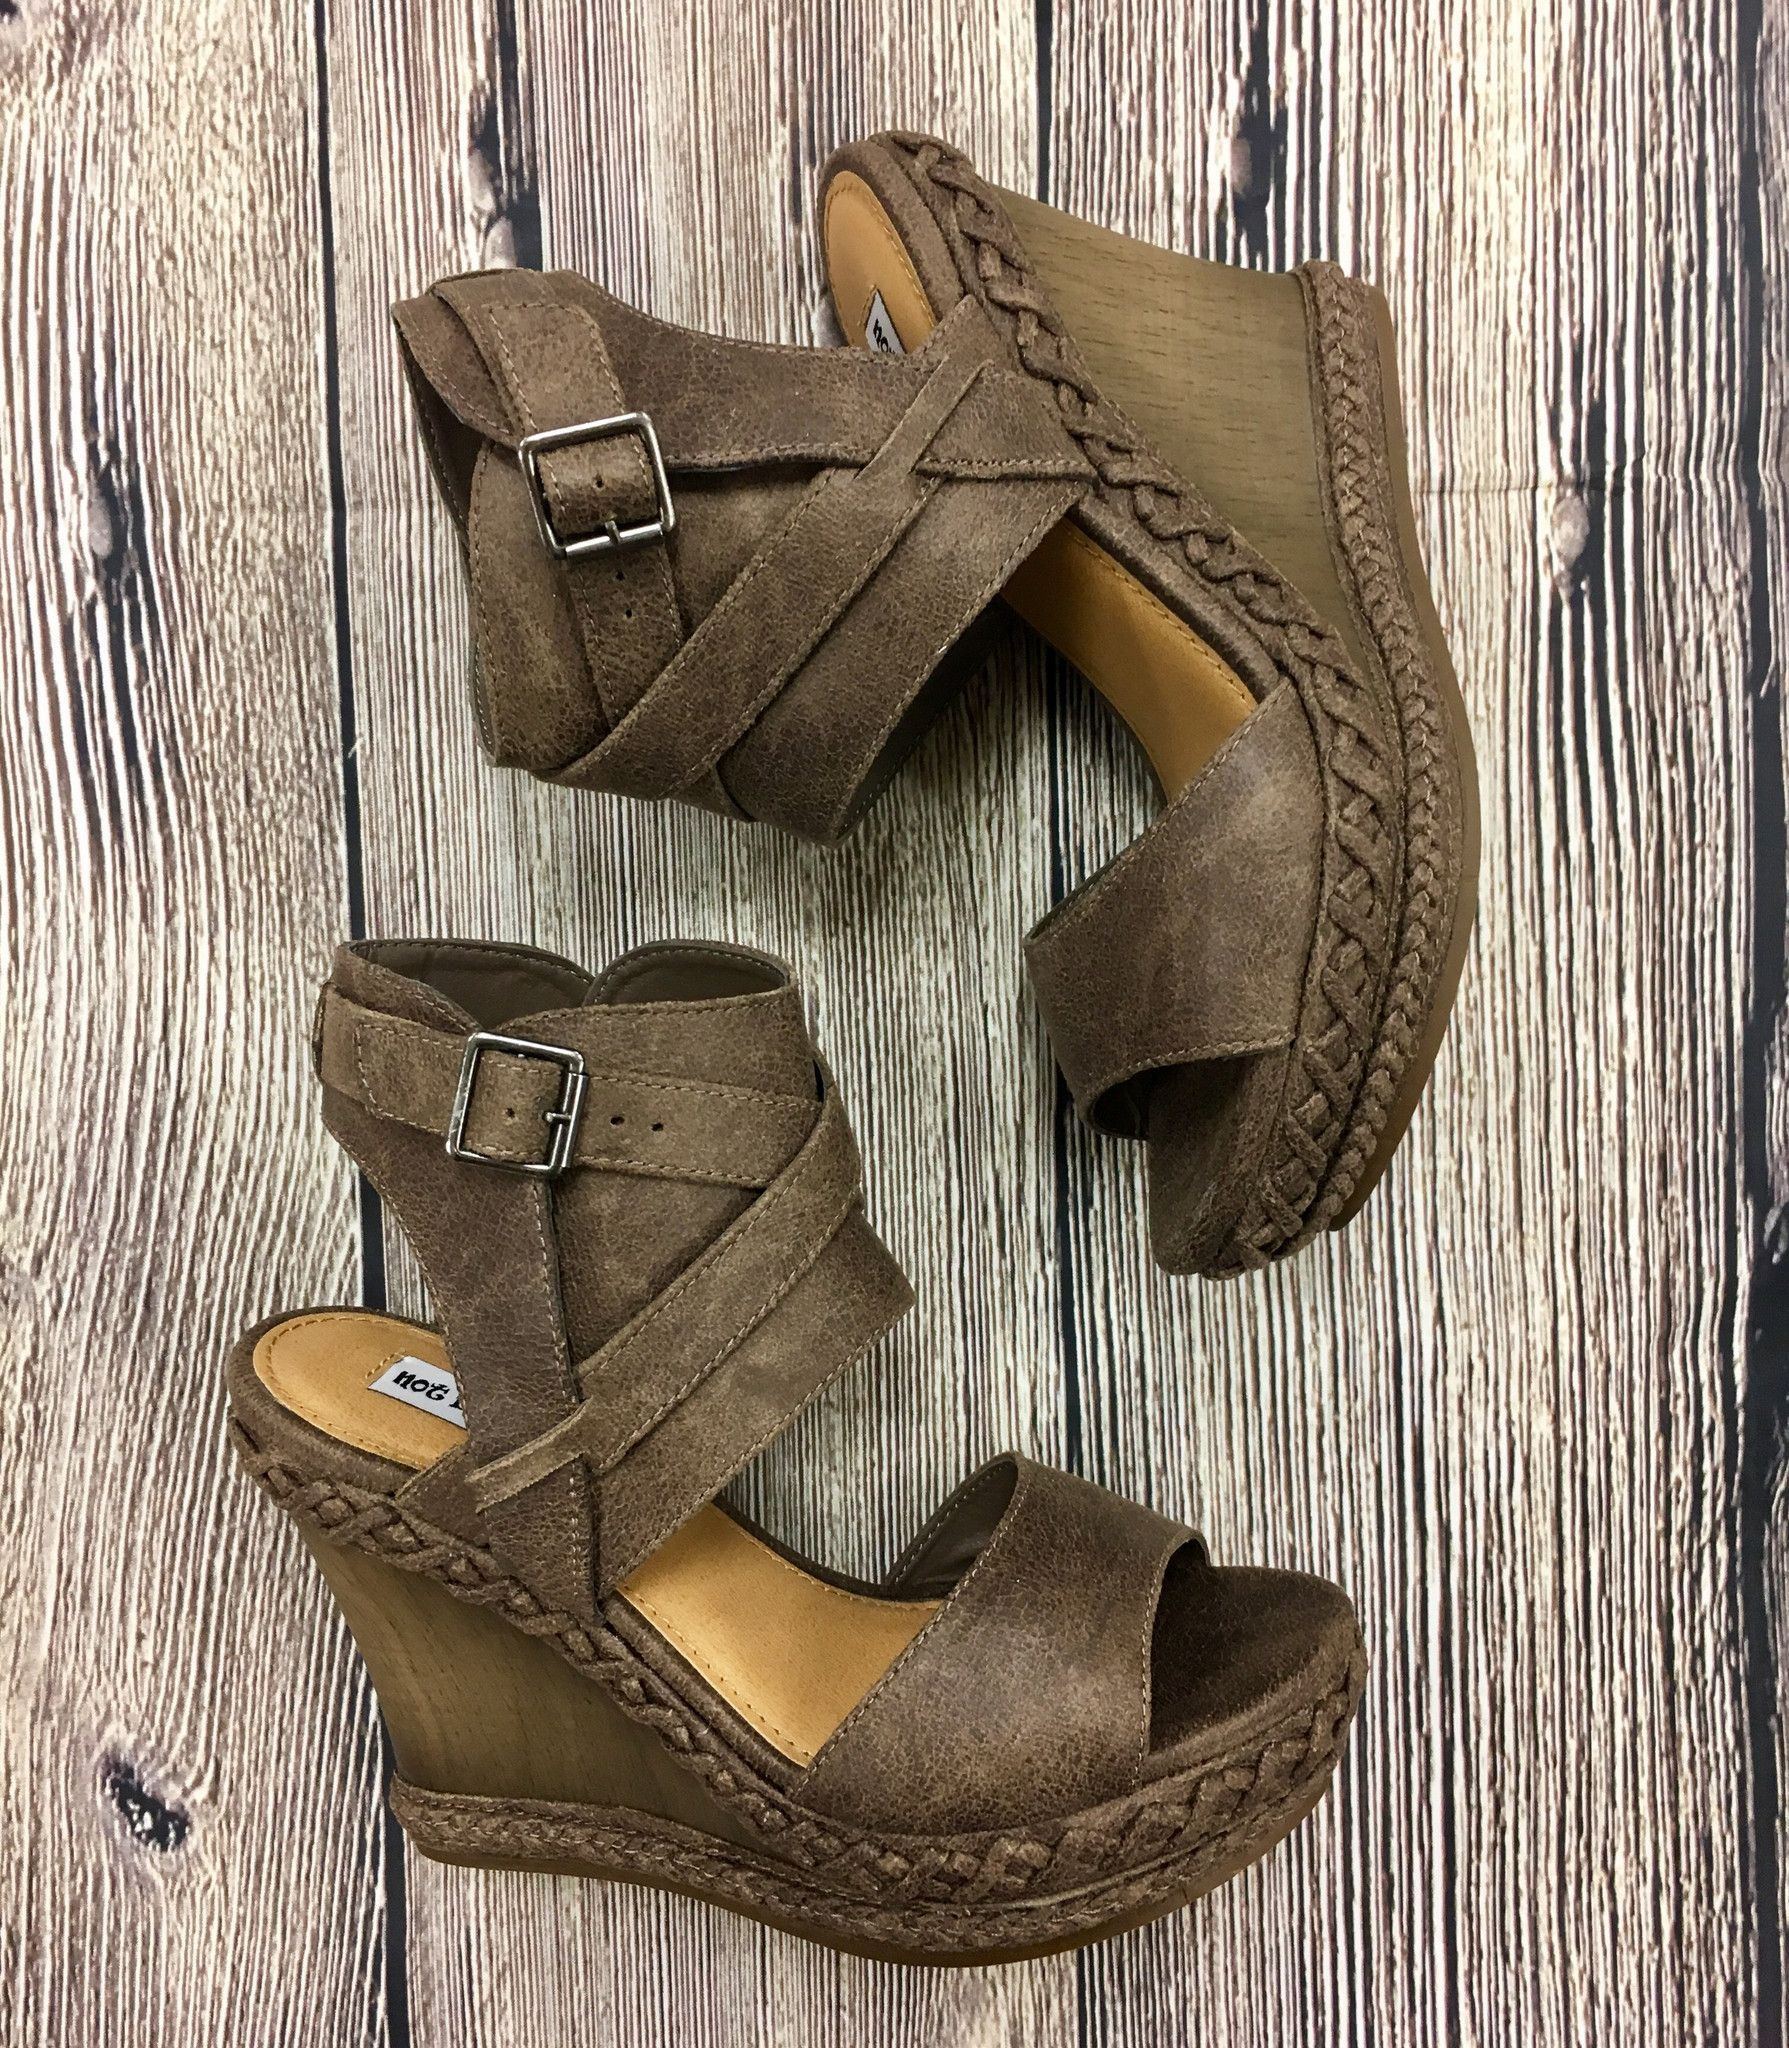 Not Rated Lubbock Wedge Sandals Wedge Sandals Jewels Clothing Wedges